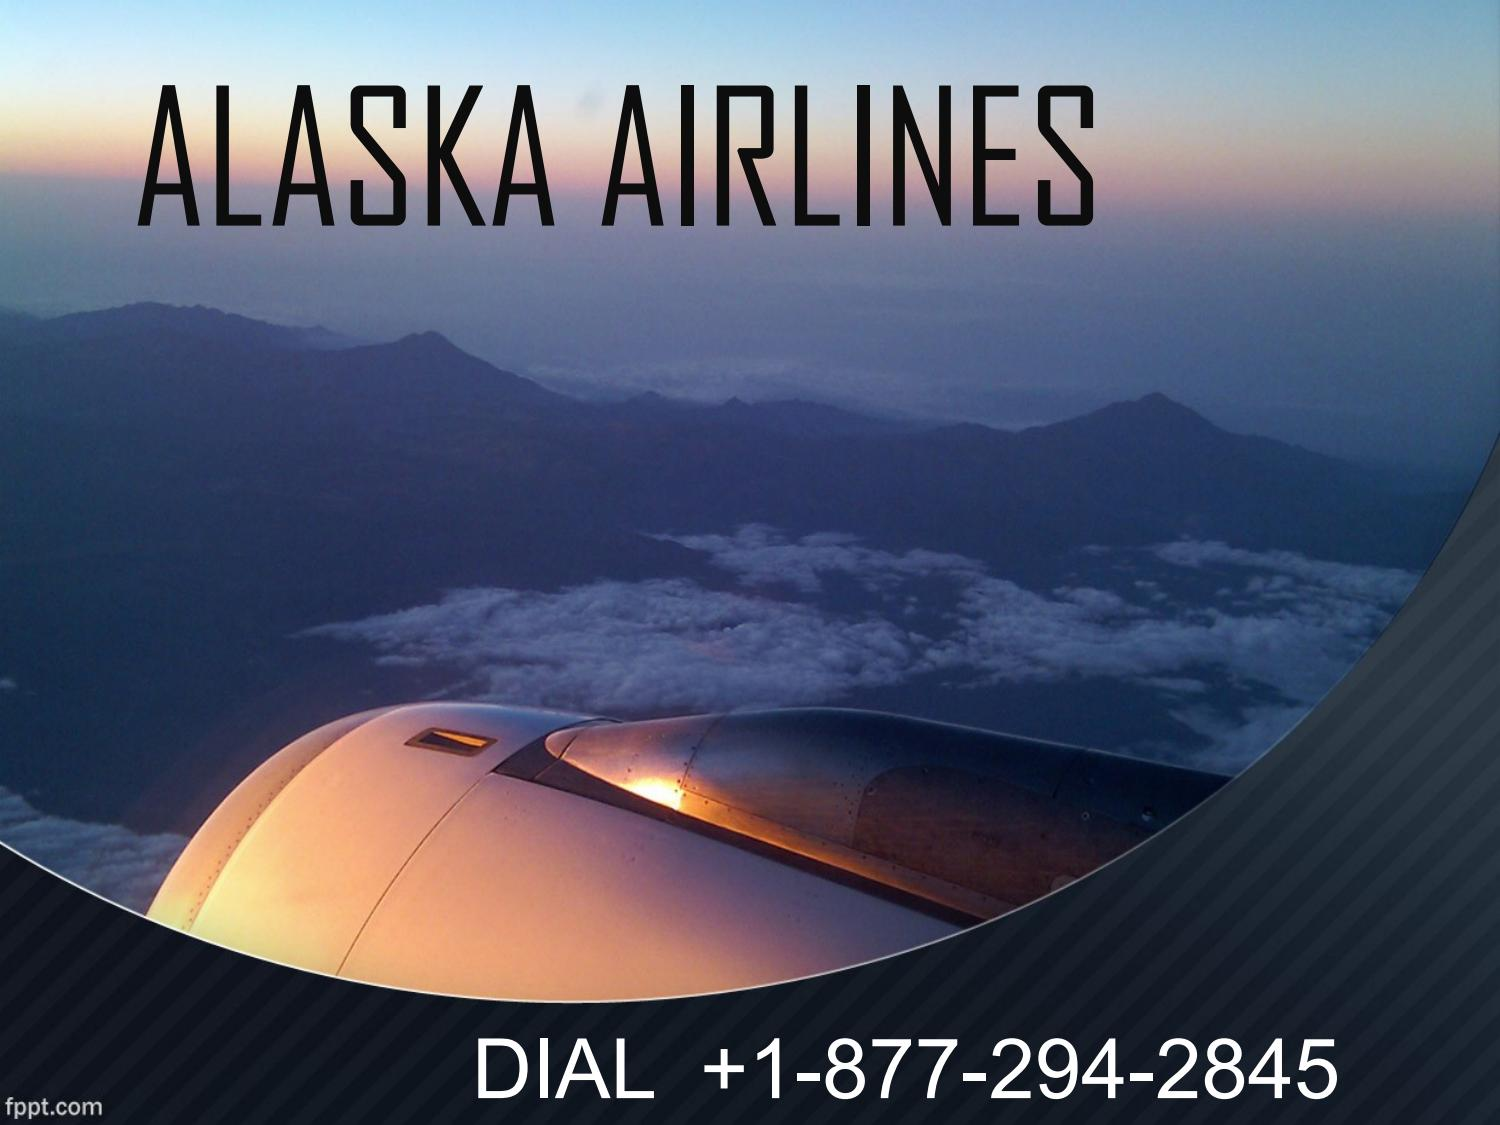 Alaska airlines booking phone number Customer service Online Check in Flight  Status Baggage policy by snowjon1293 - issuu